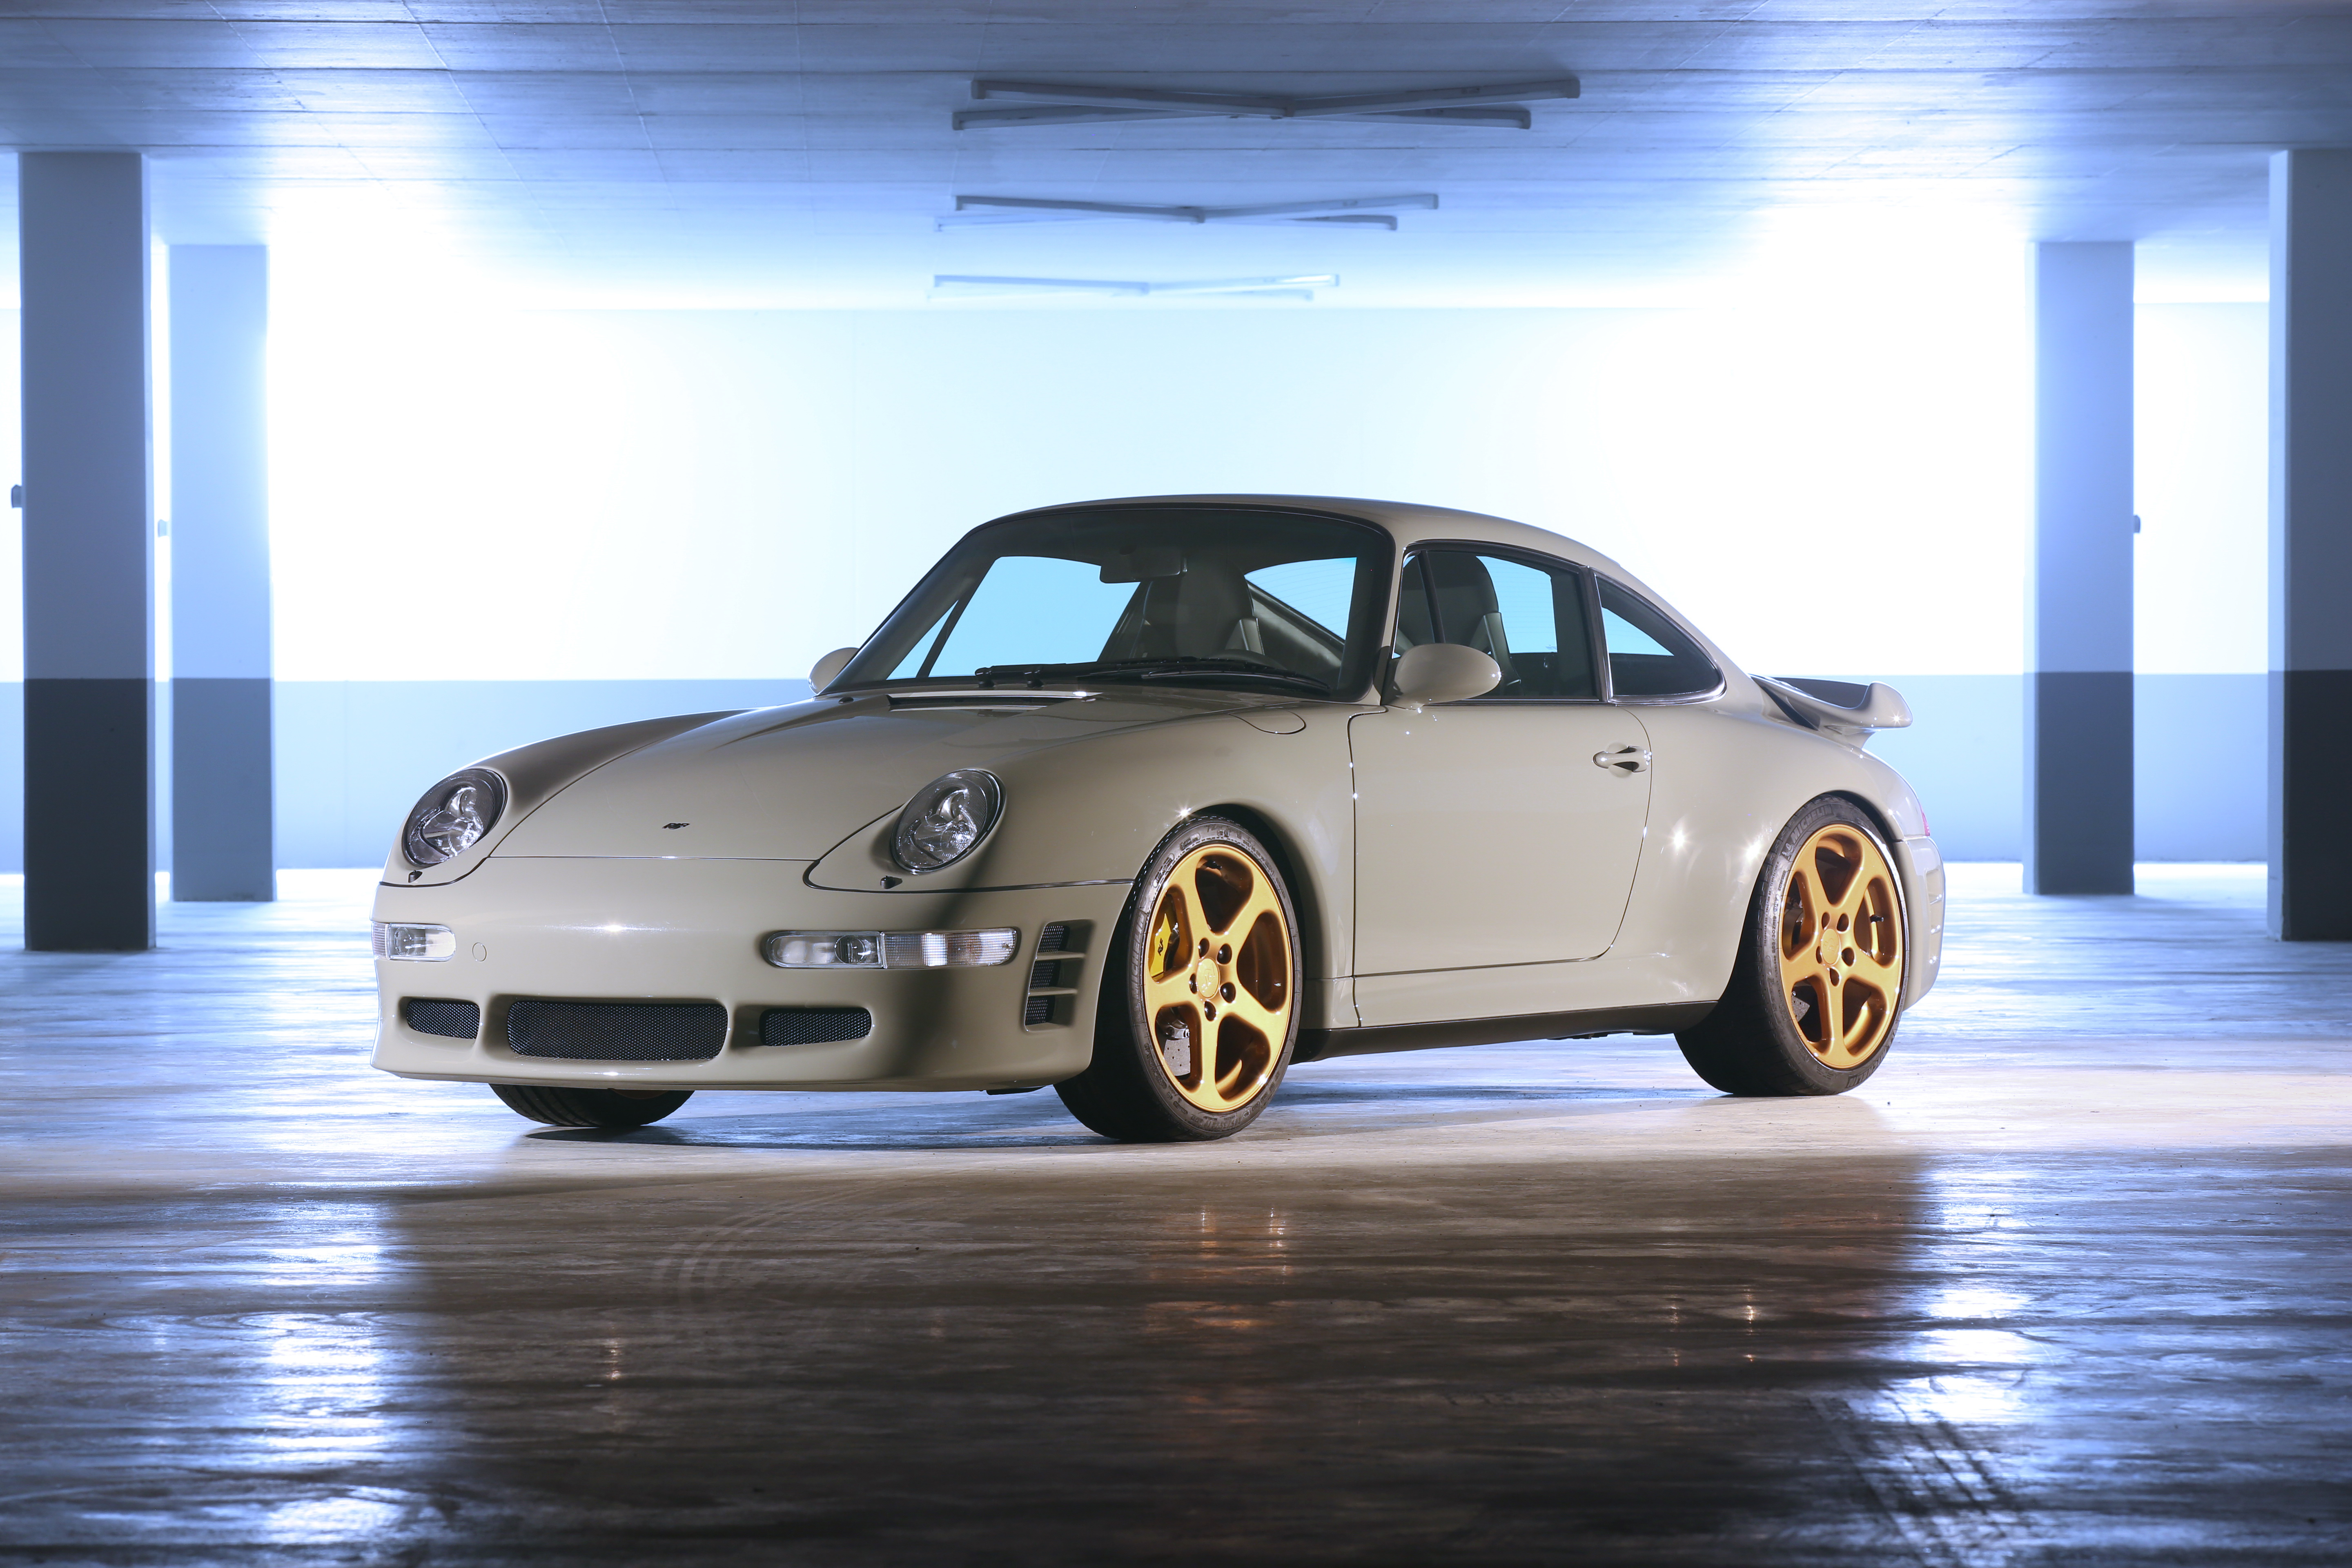 Ruf Turbo R Is Now Available With Full Carbon Fiber Skin